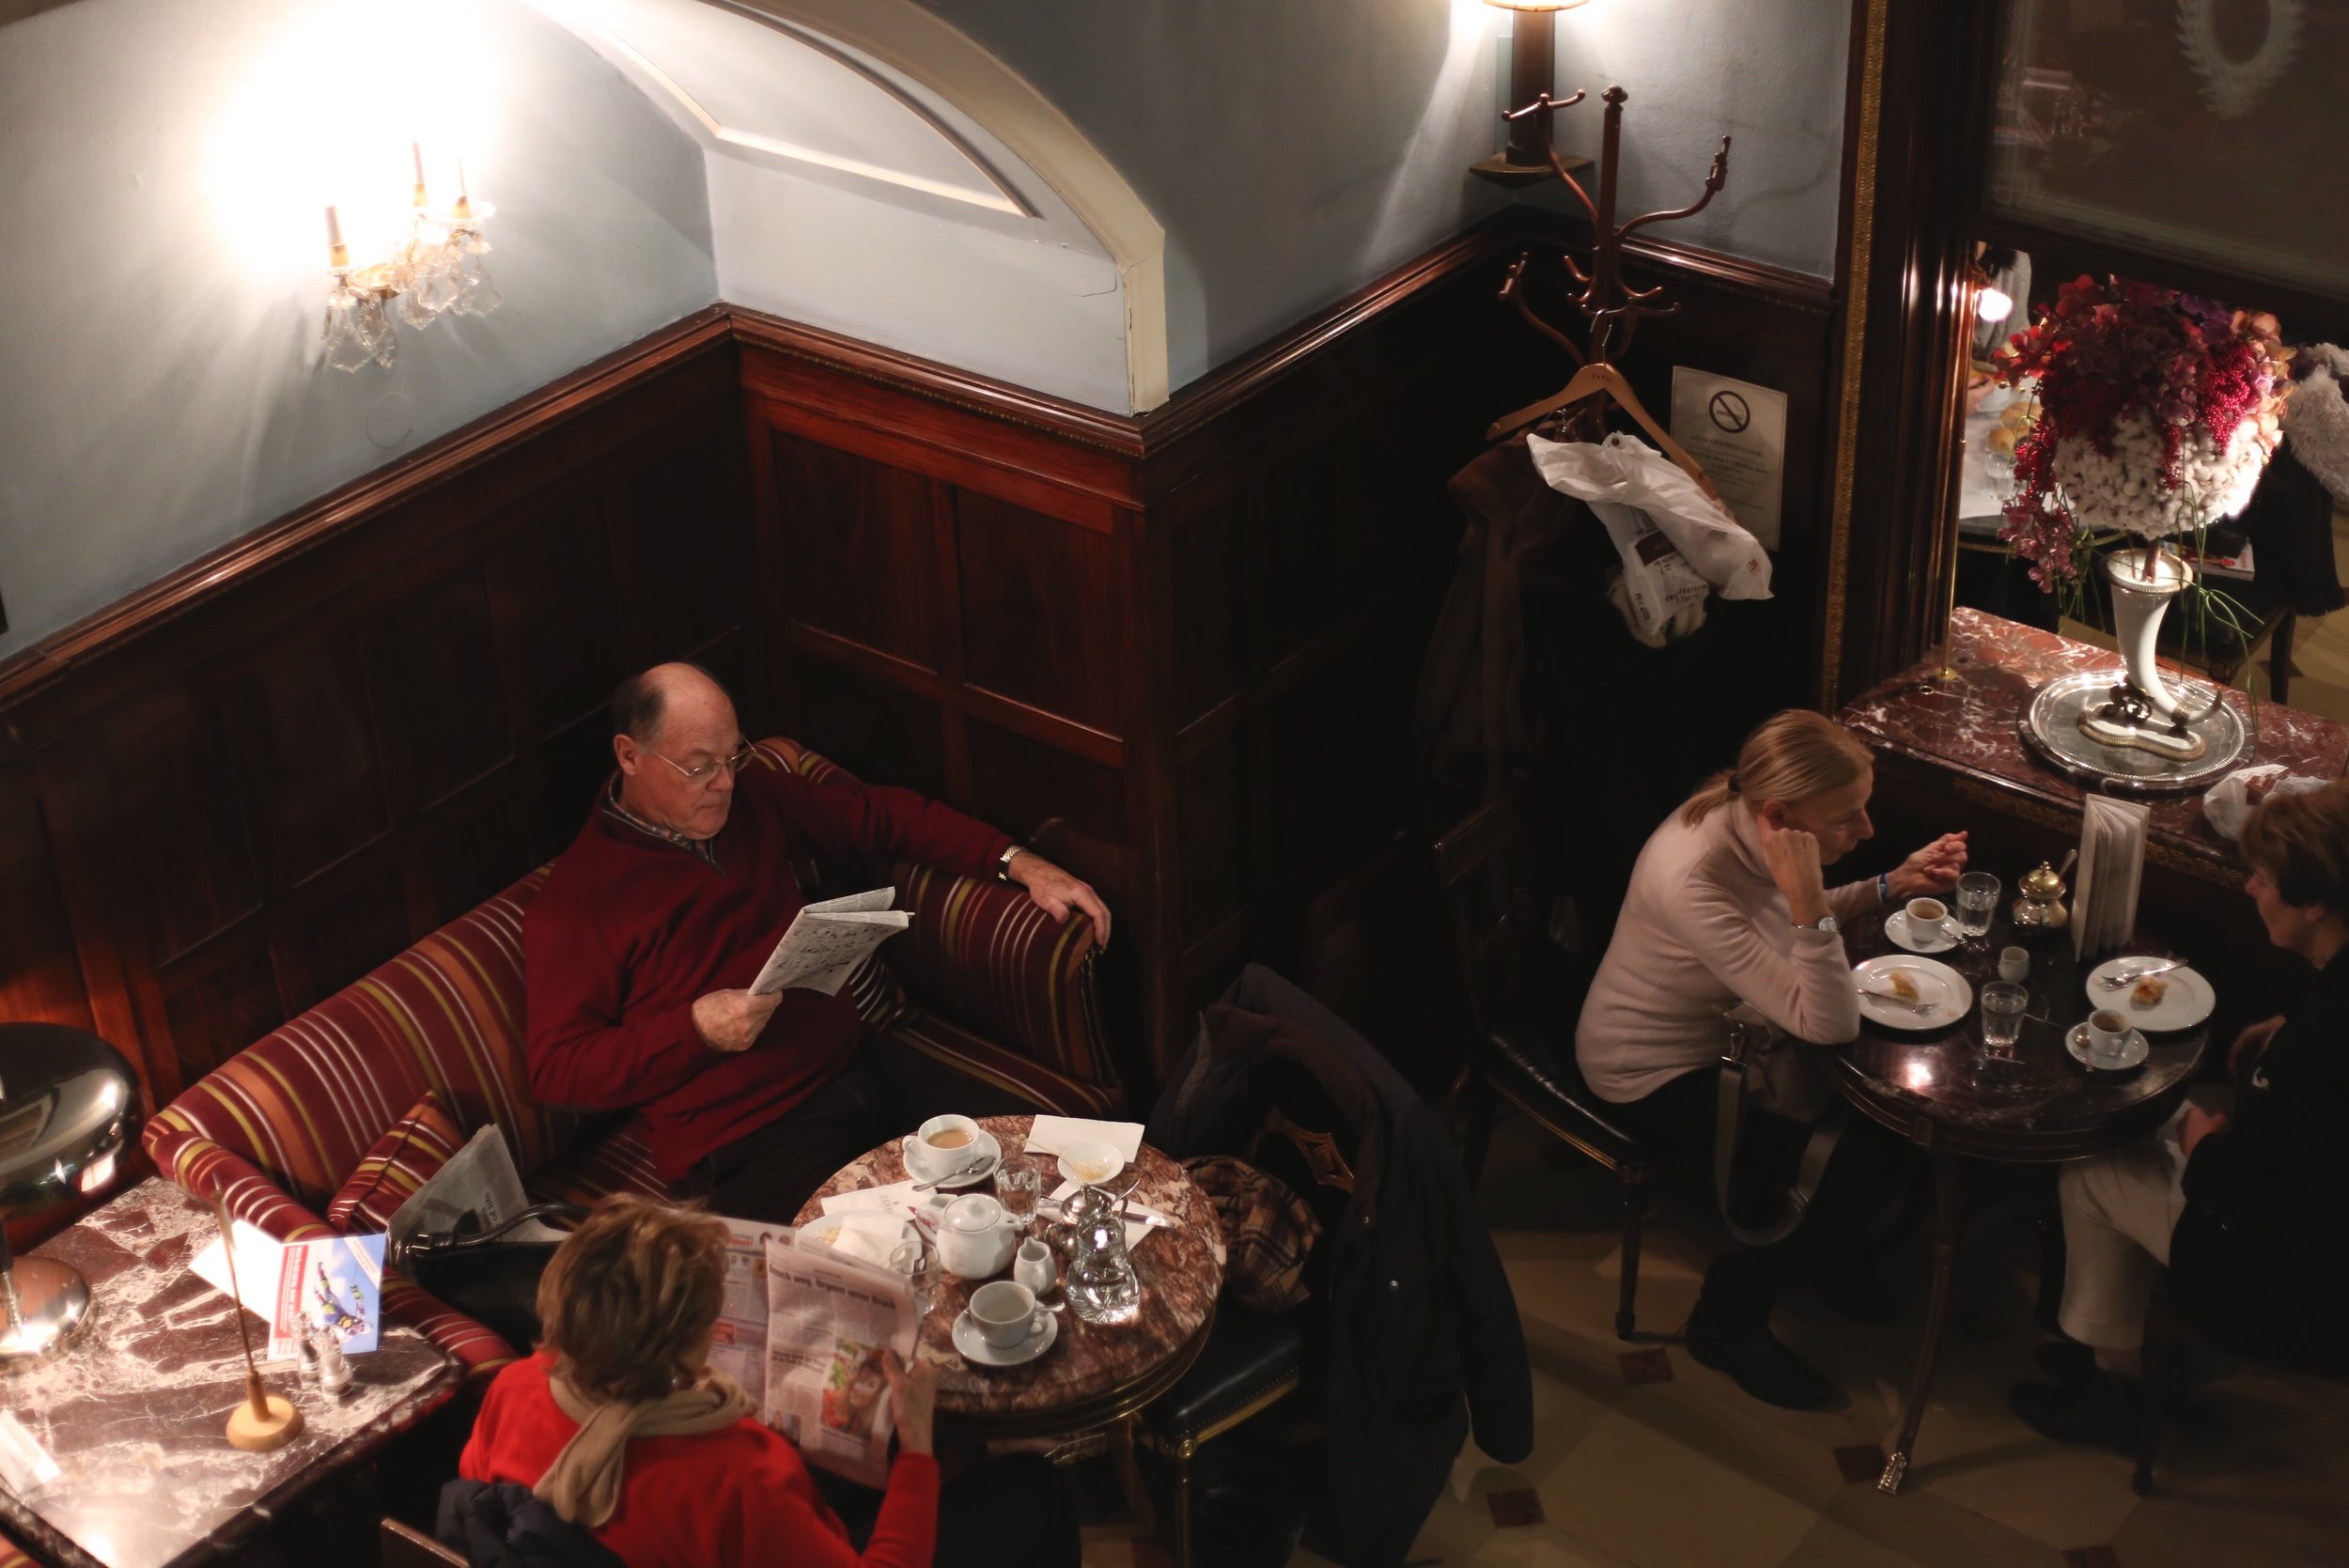 People reading the paper in Demel pastry shop, Vienna.